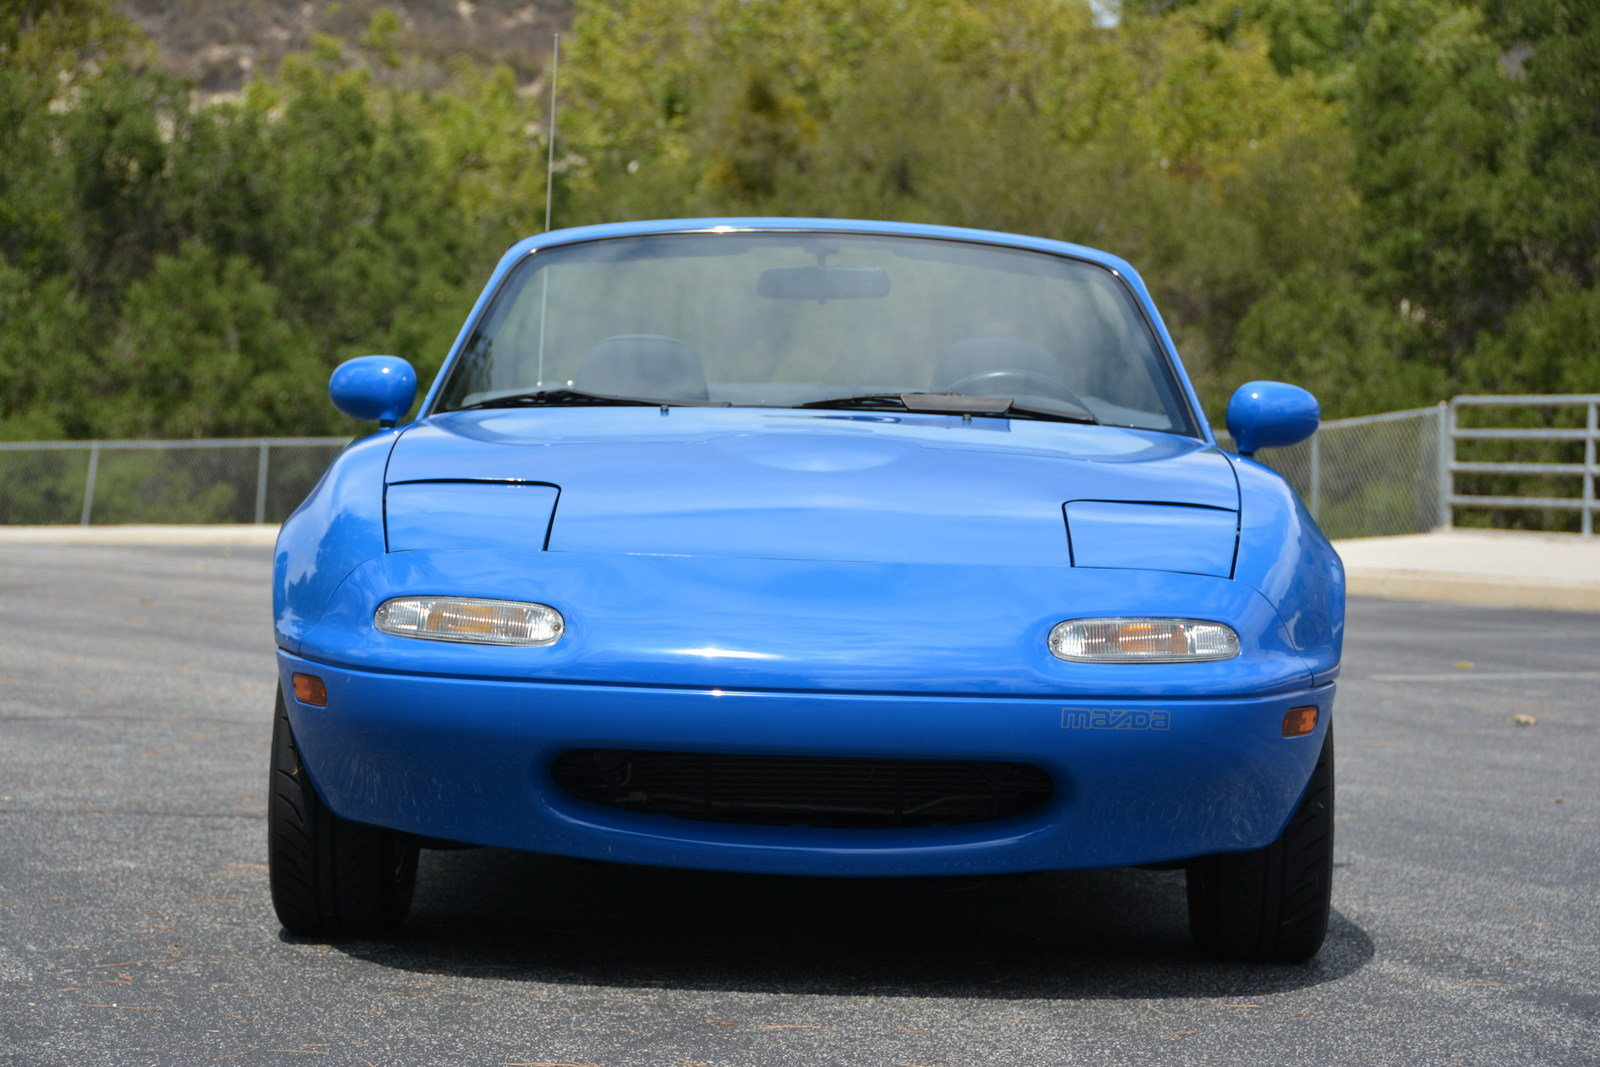 1990 mazda mx 5 miata driven picture 638413 car. Black Bedroom Furniture Sets. Home Design Ideas